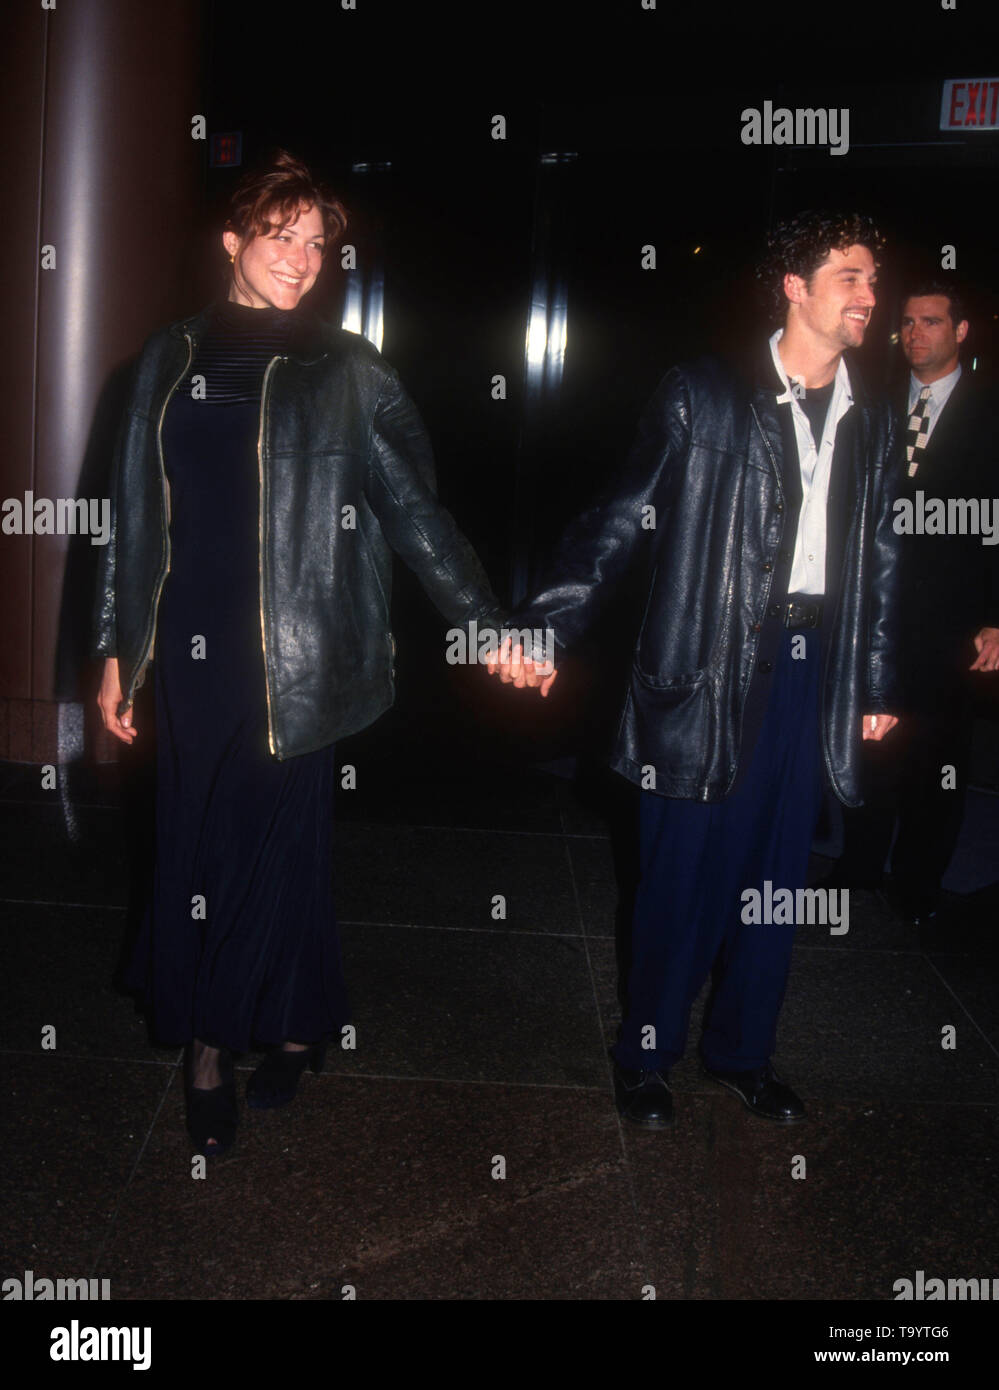 Rocky Parker High Resolution Stock Photography And Images Alamy Rocky parker is a 80 year old american actress. https www alamy com west hollywood california usa 26th april 1994 actor patrick dempsey and wife rocky parker attend warner bros pictures with honors premiere on april 26 1994 at dga theatre in west hollywood california usa photo by barry kingalamy stock photo image247089030 html